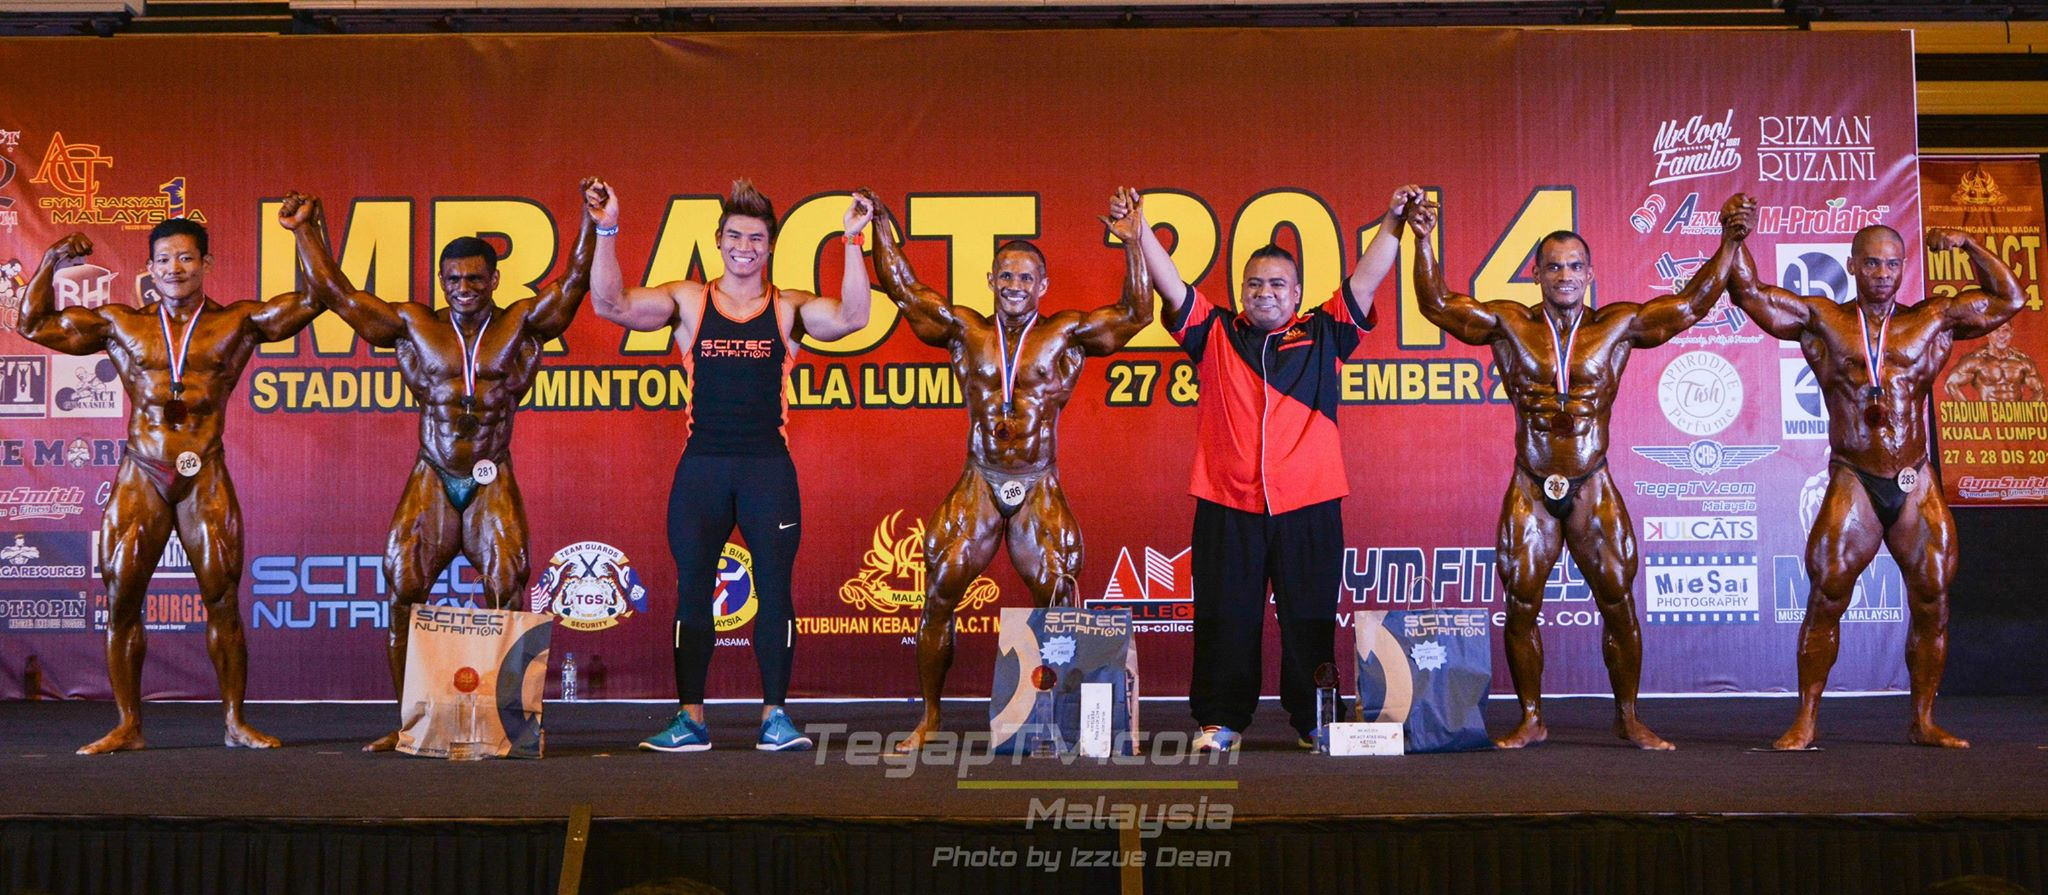 Winners Bodybuilding Over 80kg